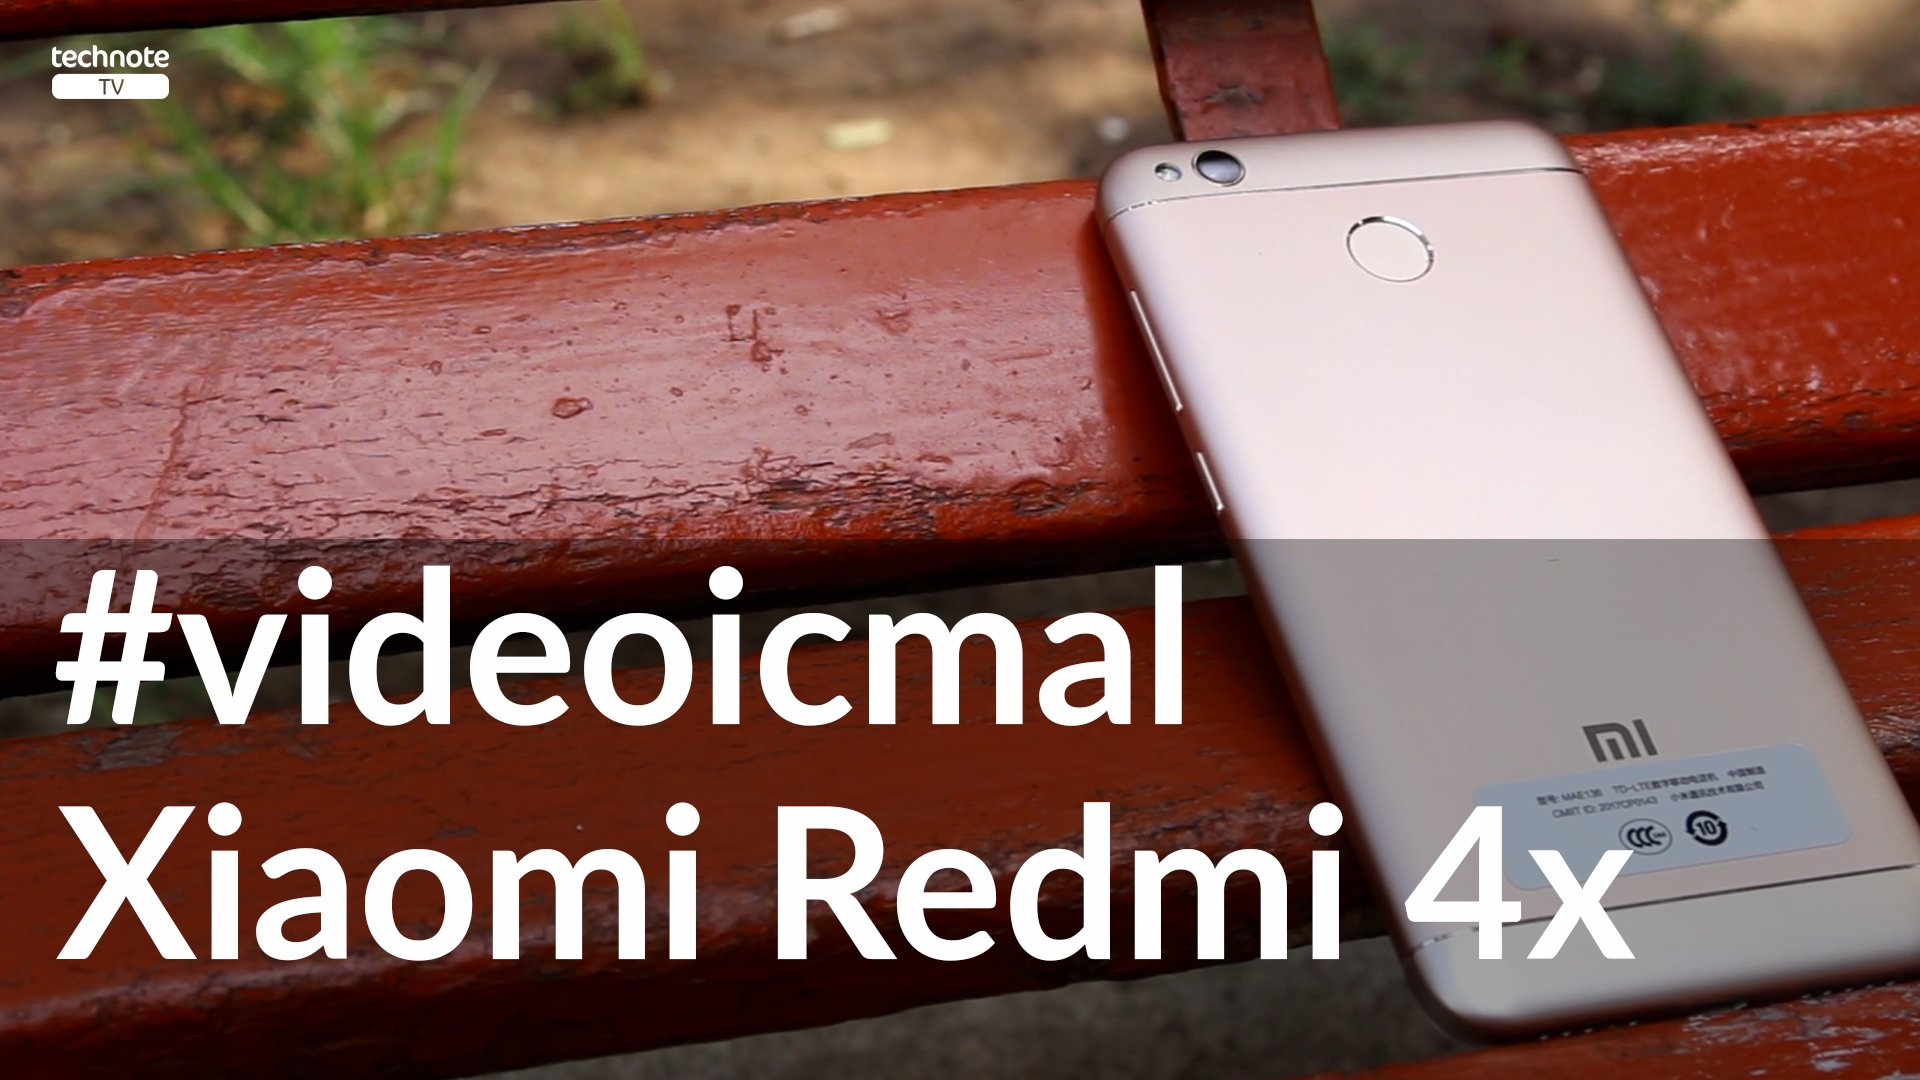 xiaomi redmi 4x, xiaomi redmi 4x haqqinda, xiaomi redmi 4x video icmal, xiaomi redmi 4x video review, xiaomi redmi 4x qiymeti